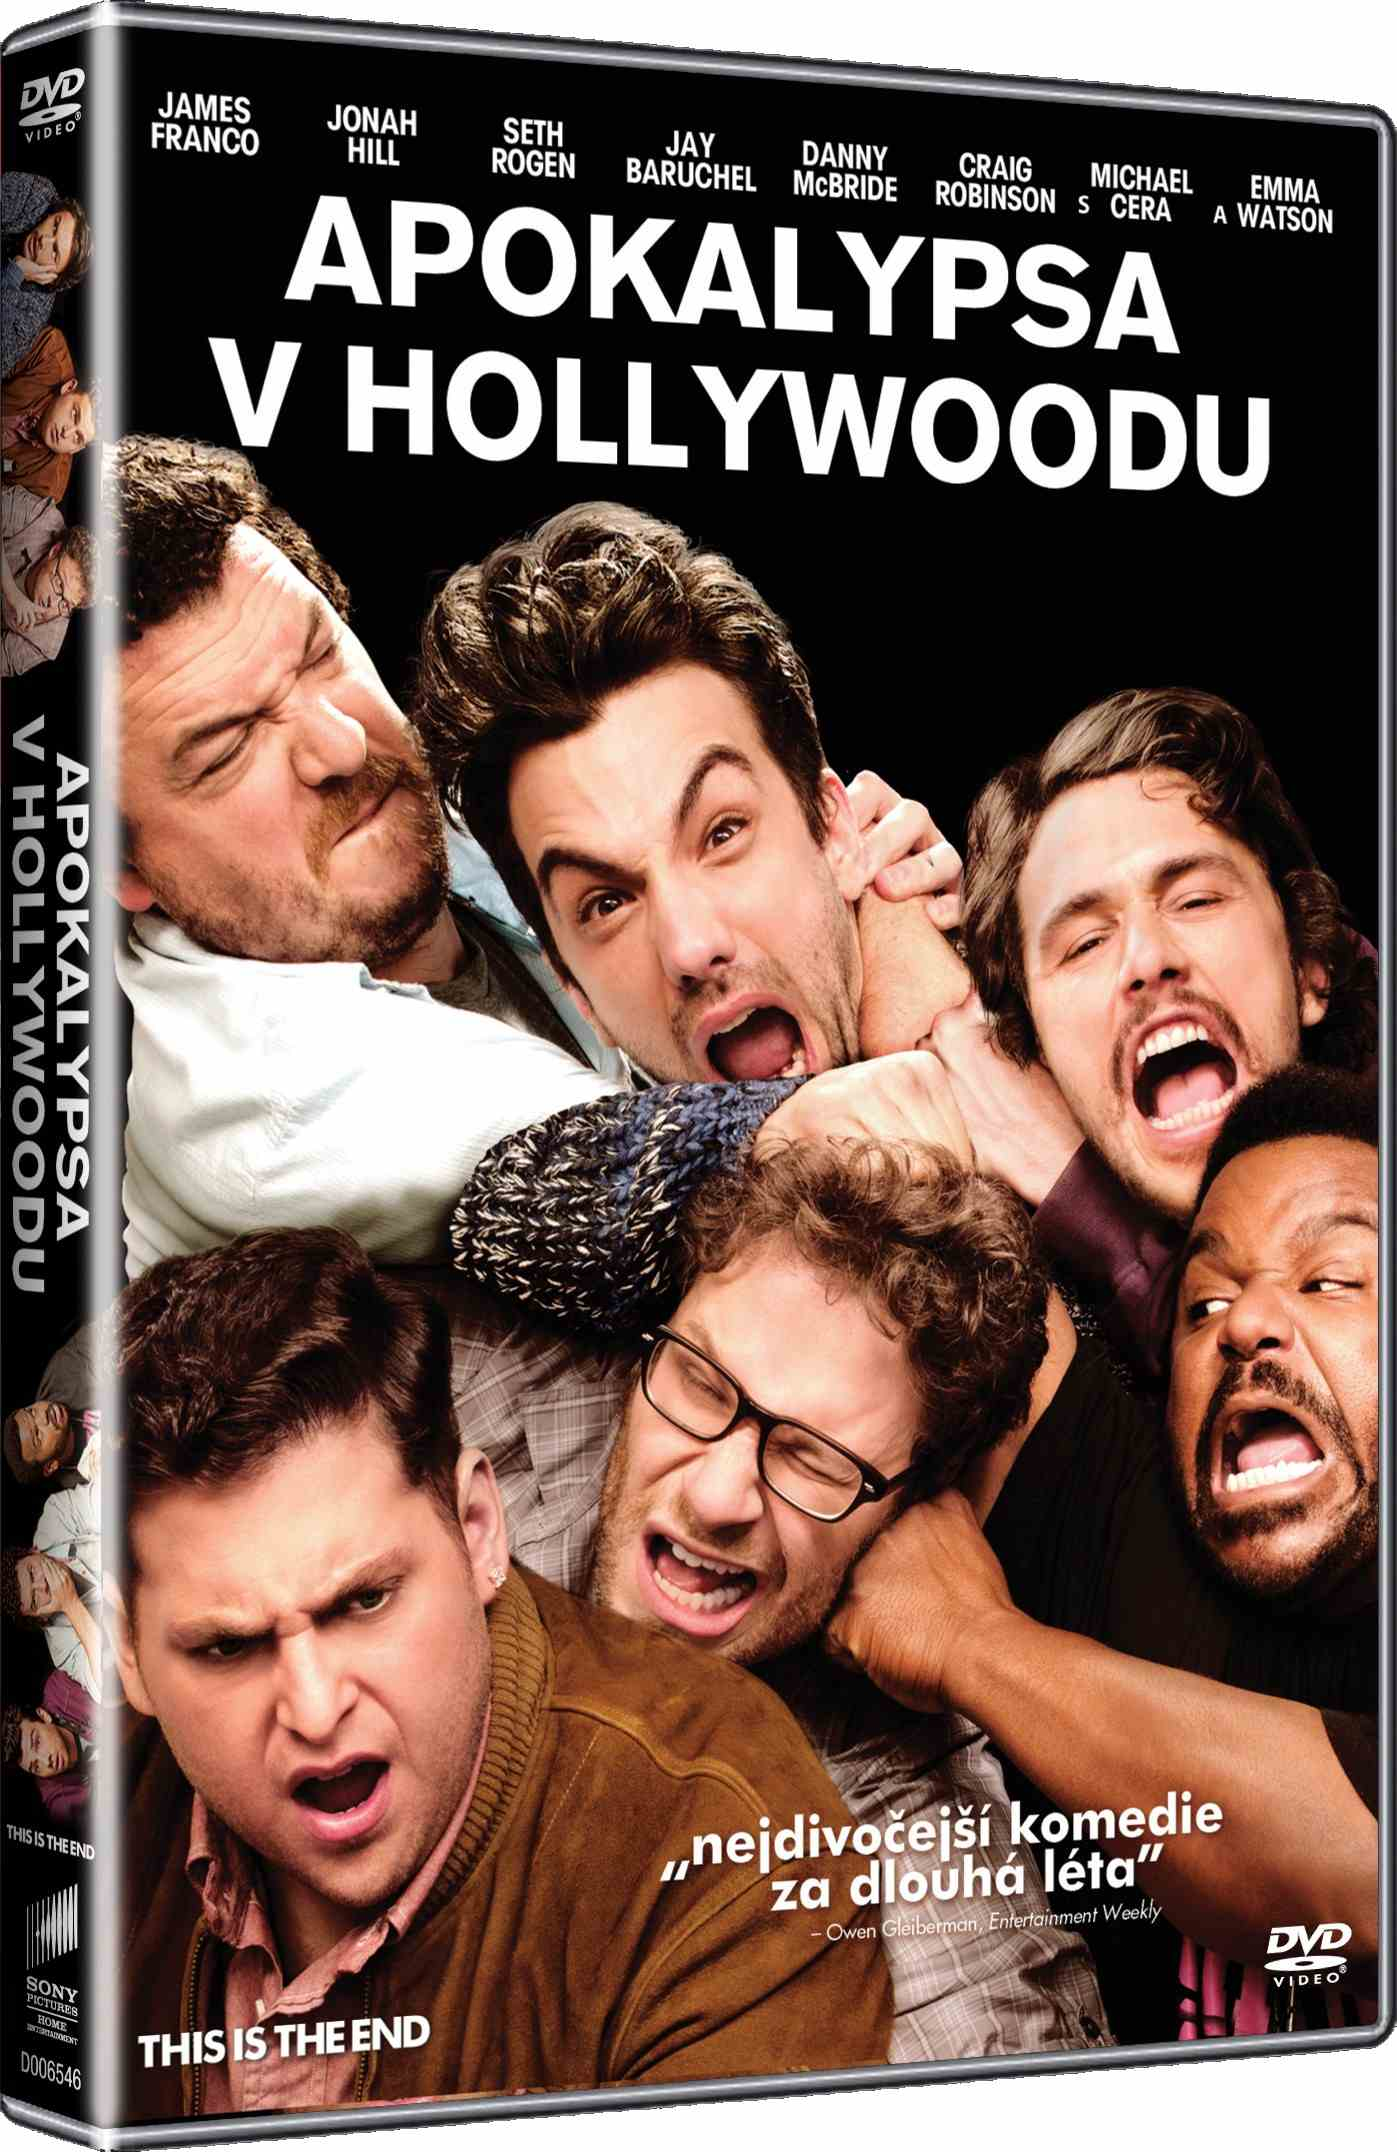 APOKALYPSA V HOLLYWOODU - DVD